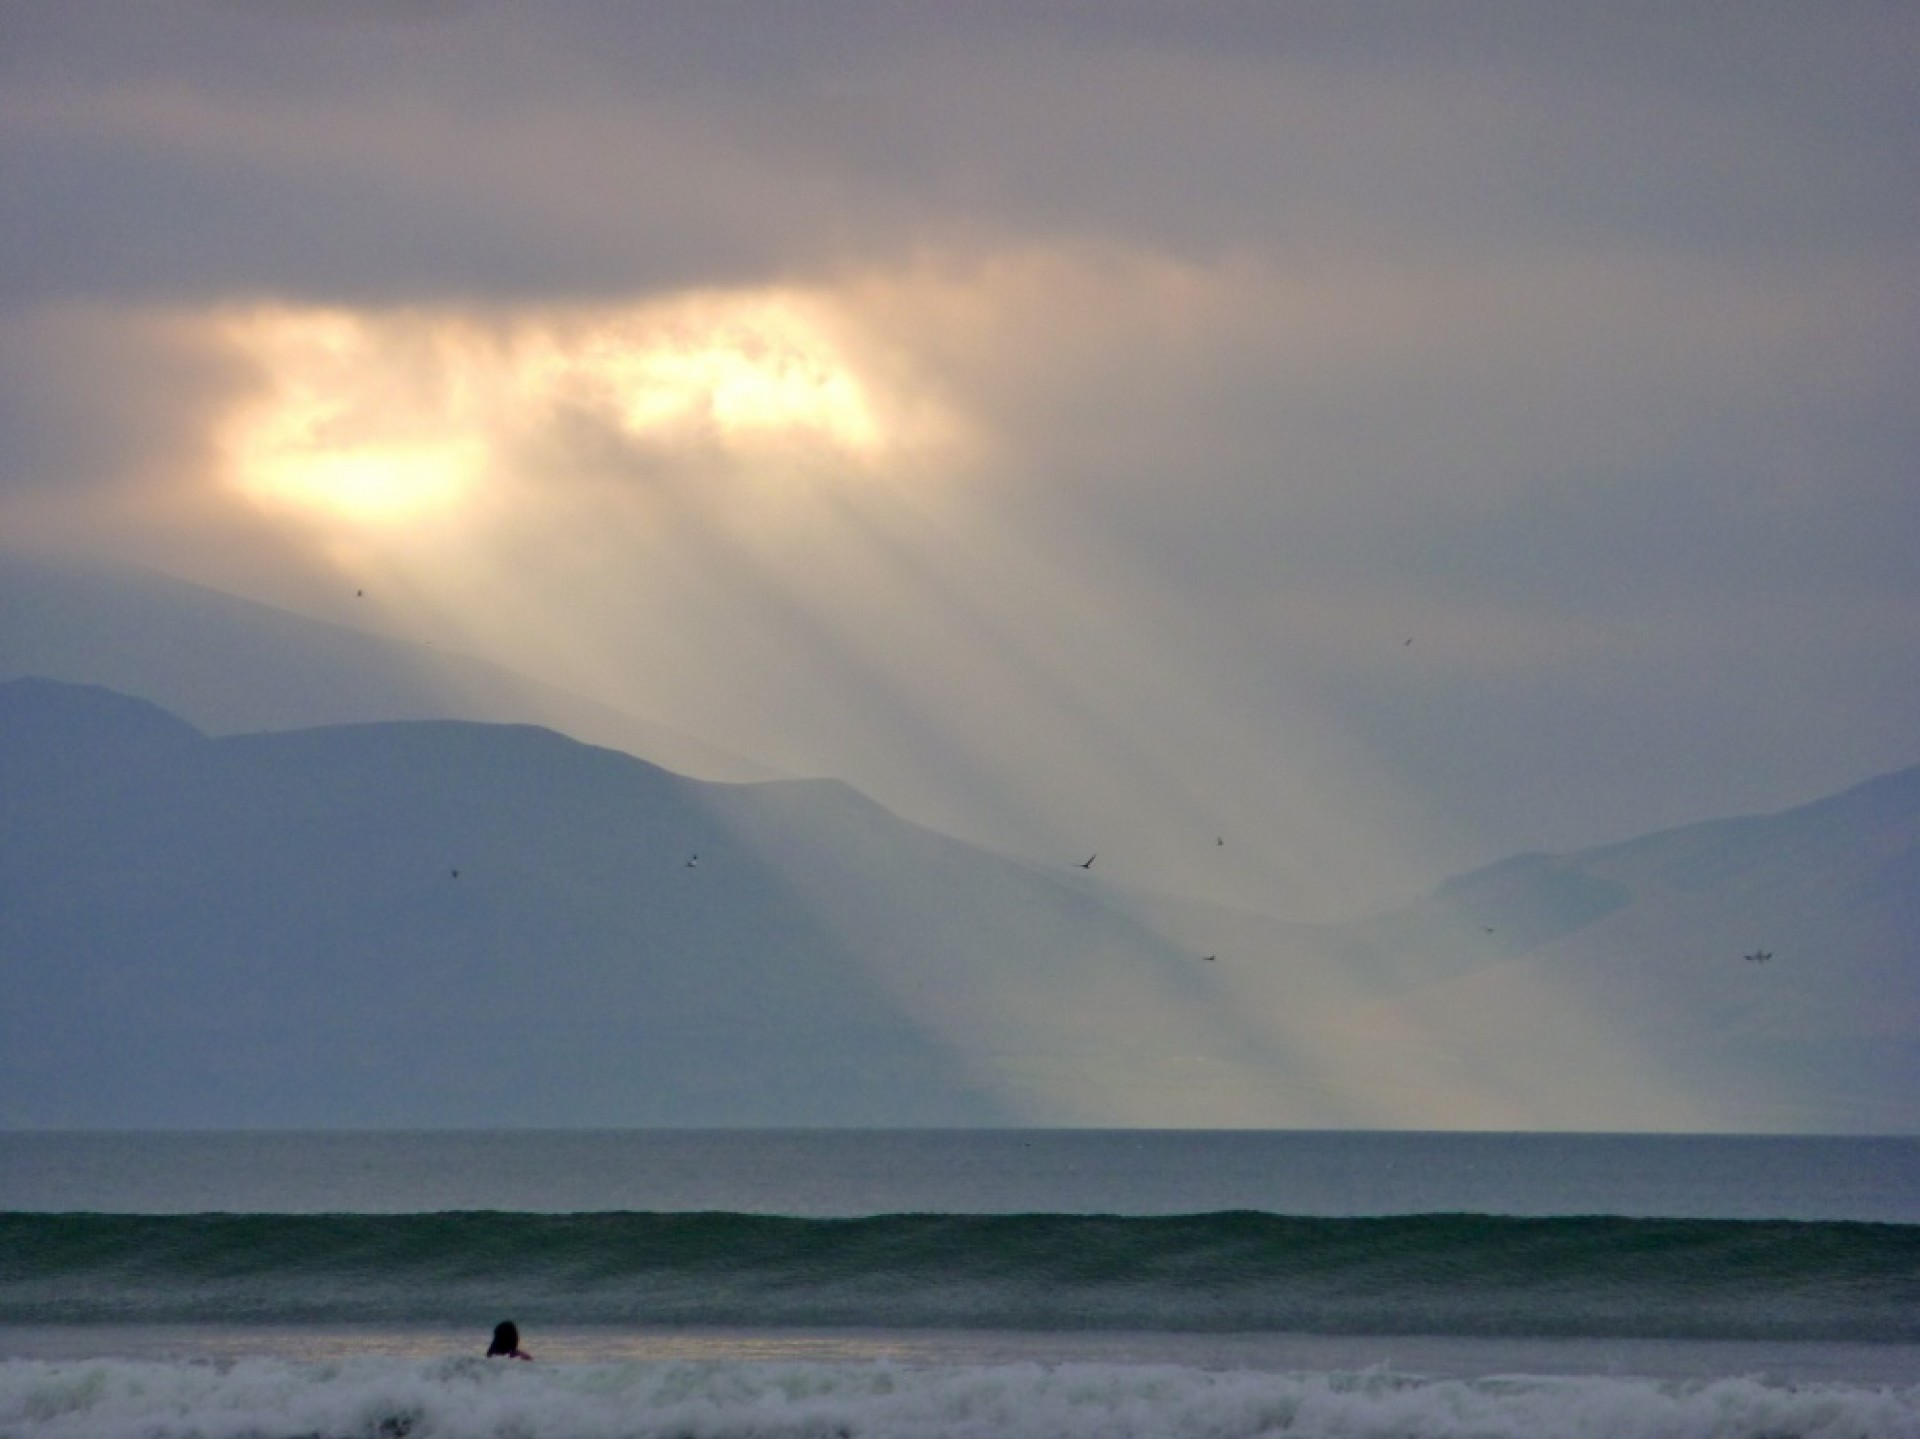 Oriel surfer's photo of Inch Strand